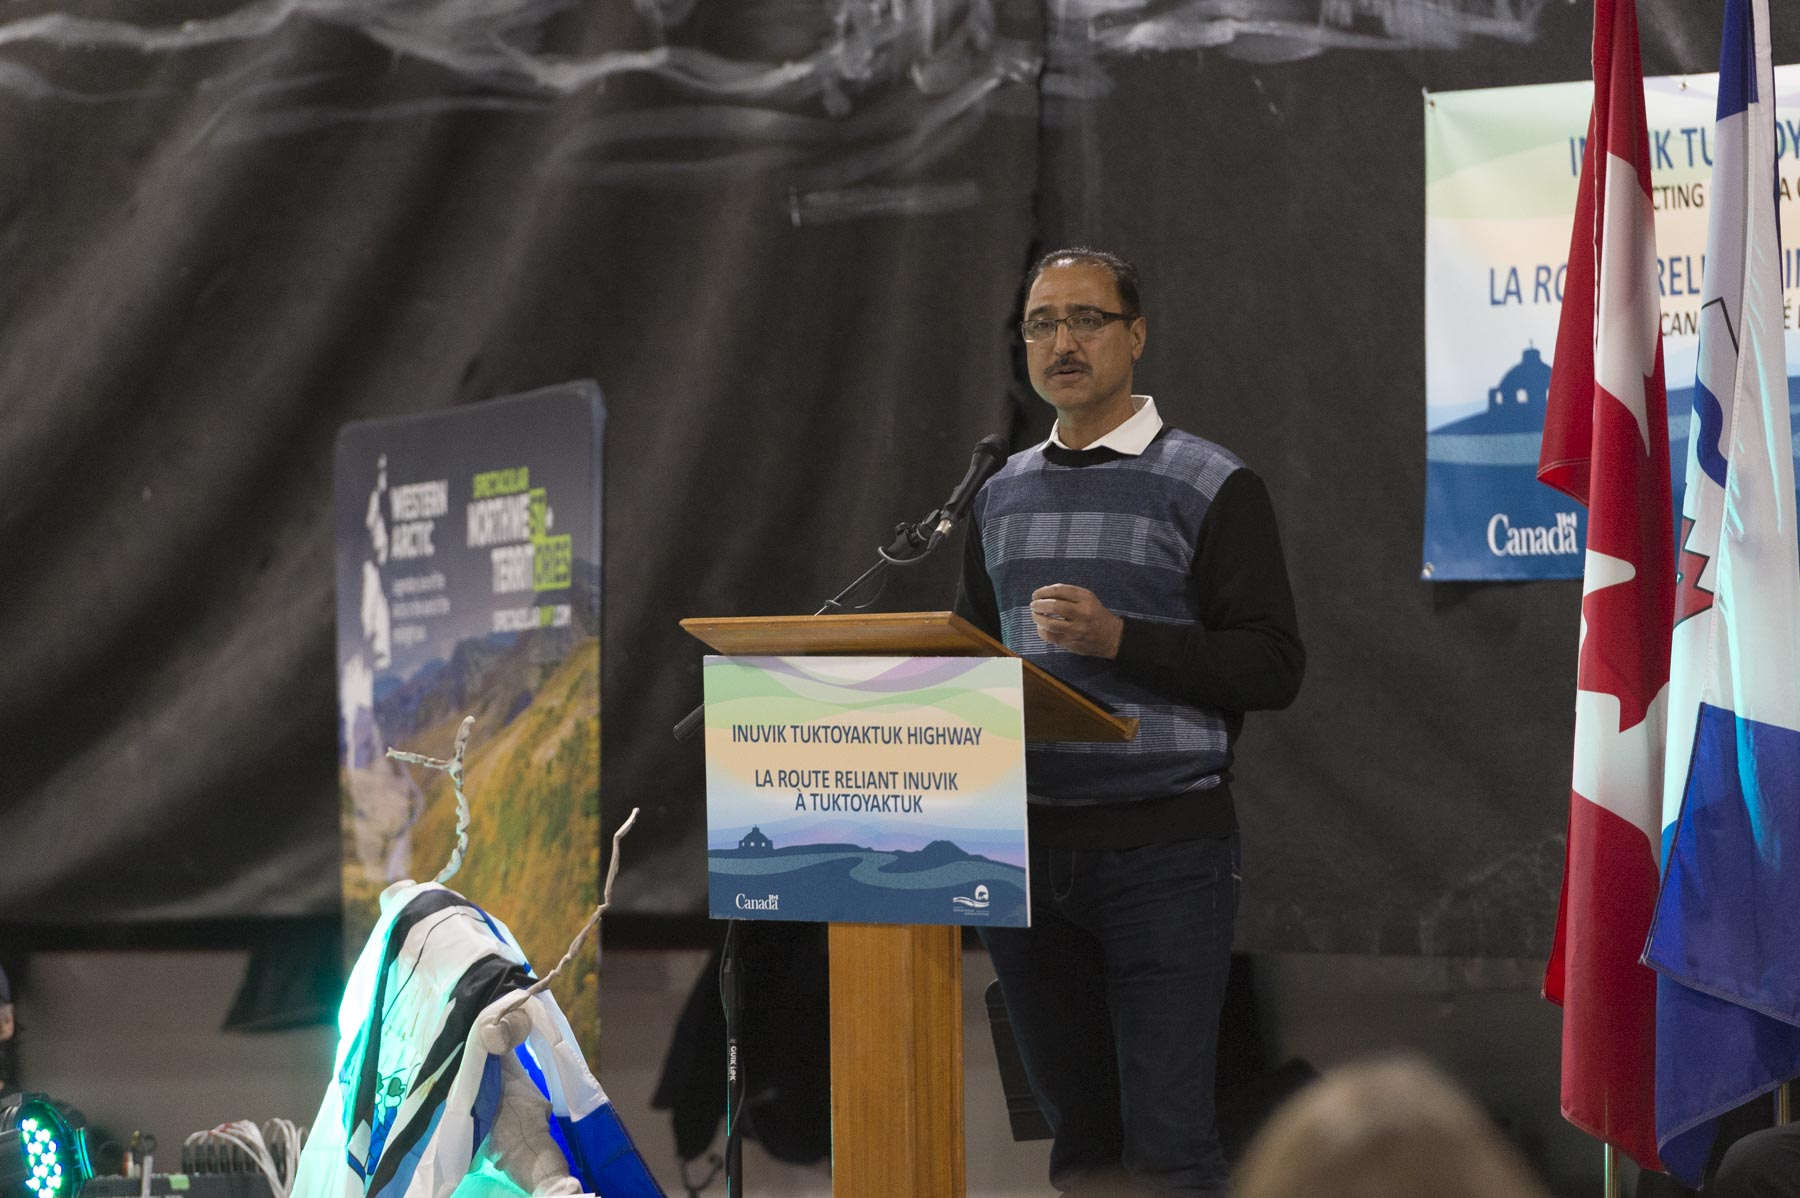 The Honourable Amarjeet Sohi, Minister of Infrastructure and Communities also delivered remarks.